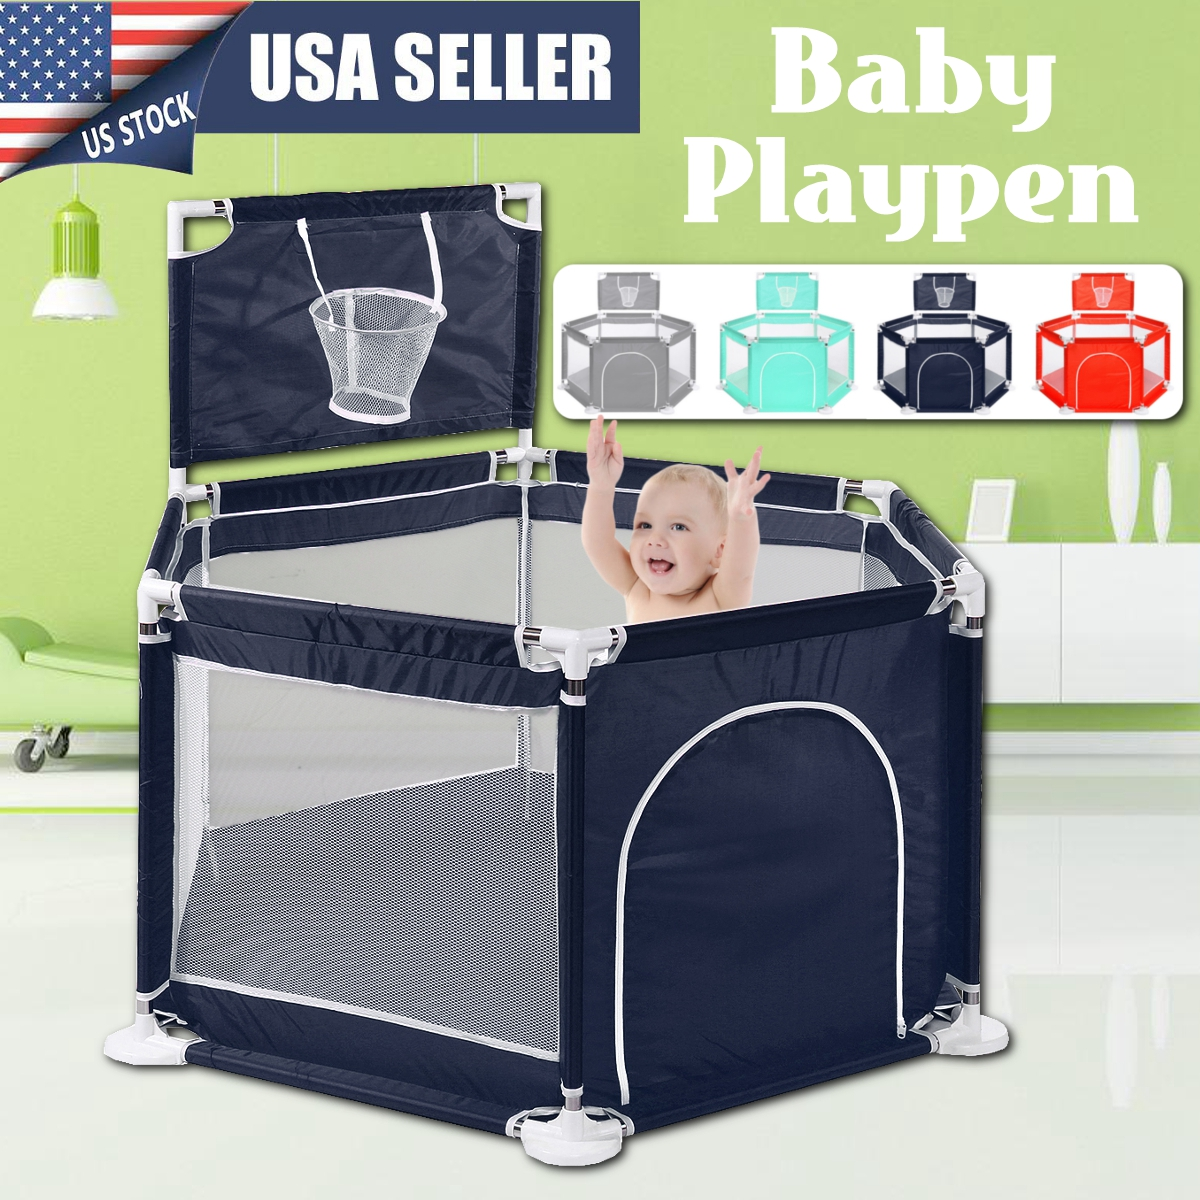 Playpen For Children Playpen Pool Balls Baby Playpen For 0-3 Years Ball Pool For Baby Fence Kids Tent Baby Tent Ball Pool